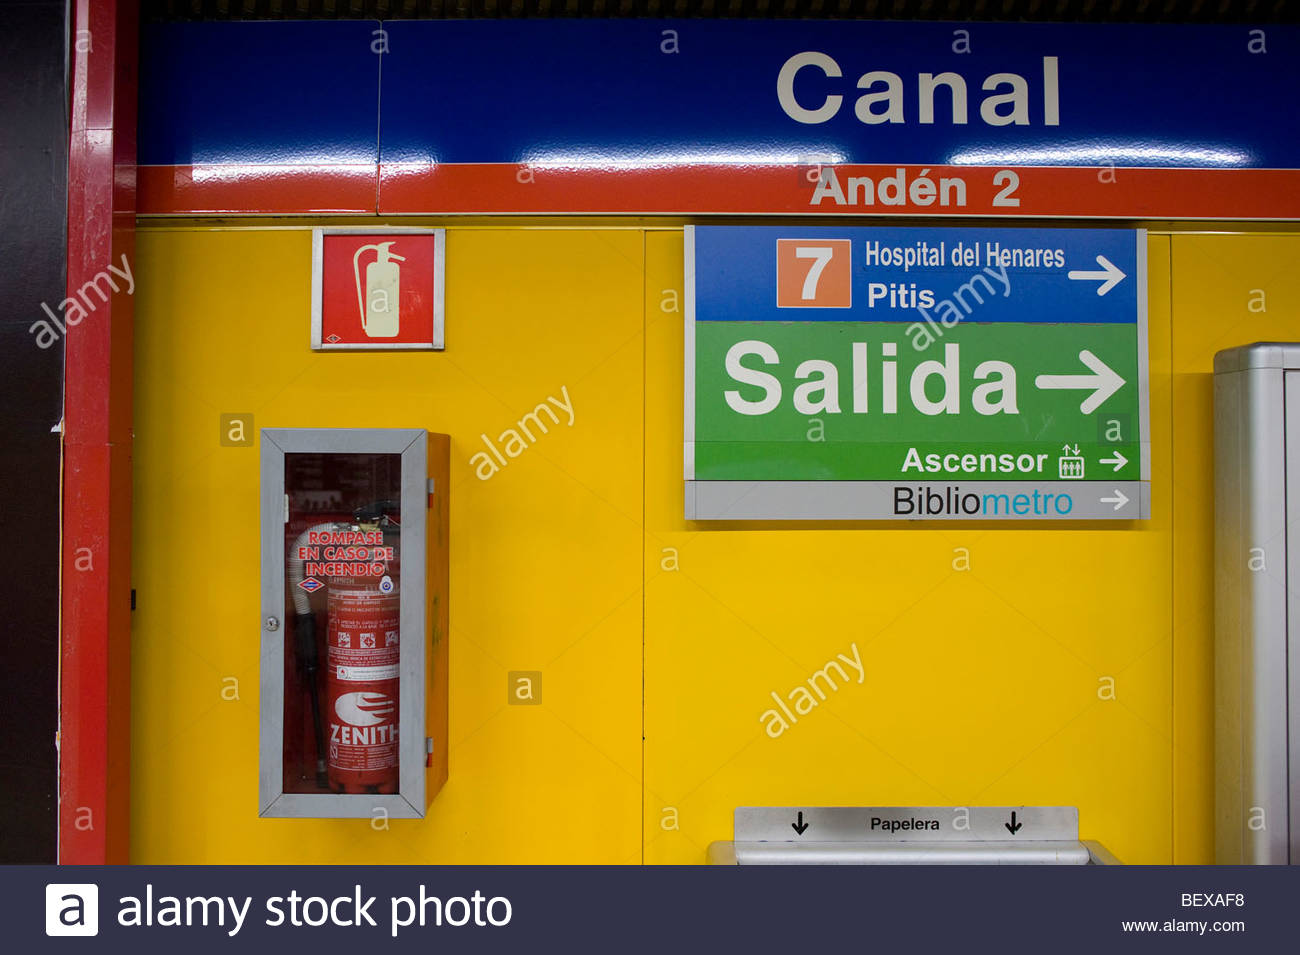 Madrid Subway Canal Station exit sign - Stock Image